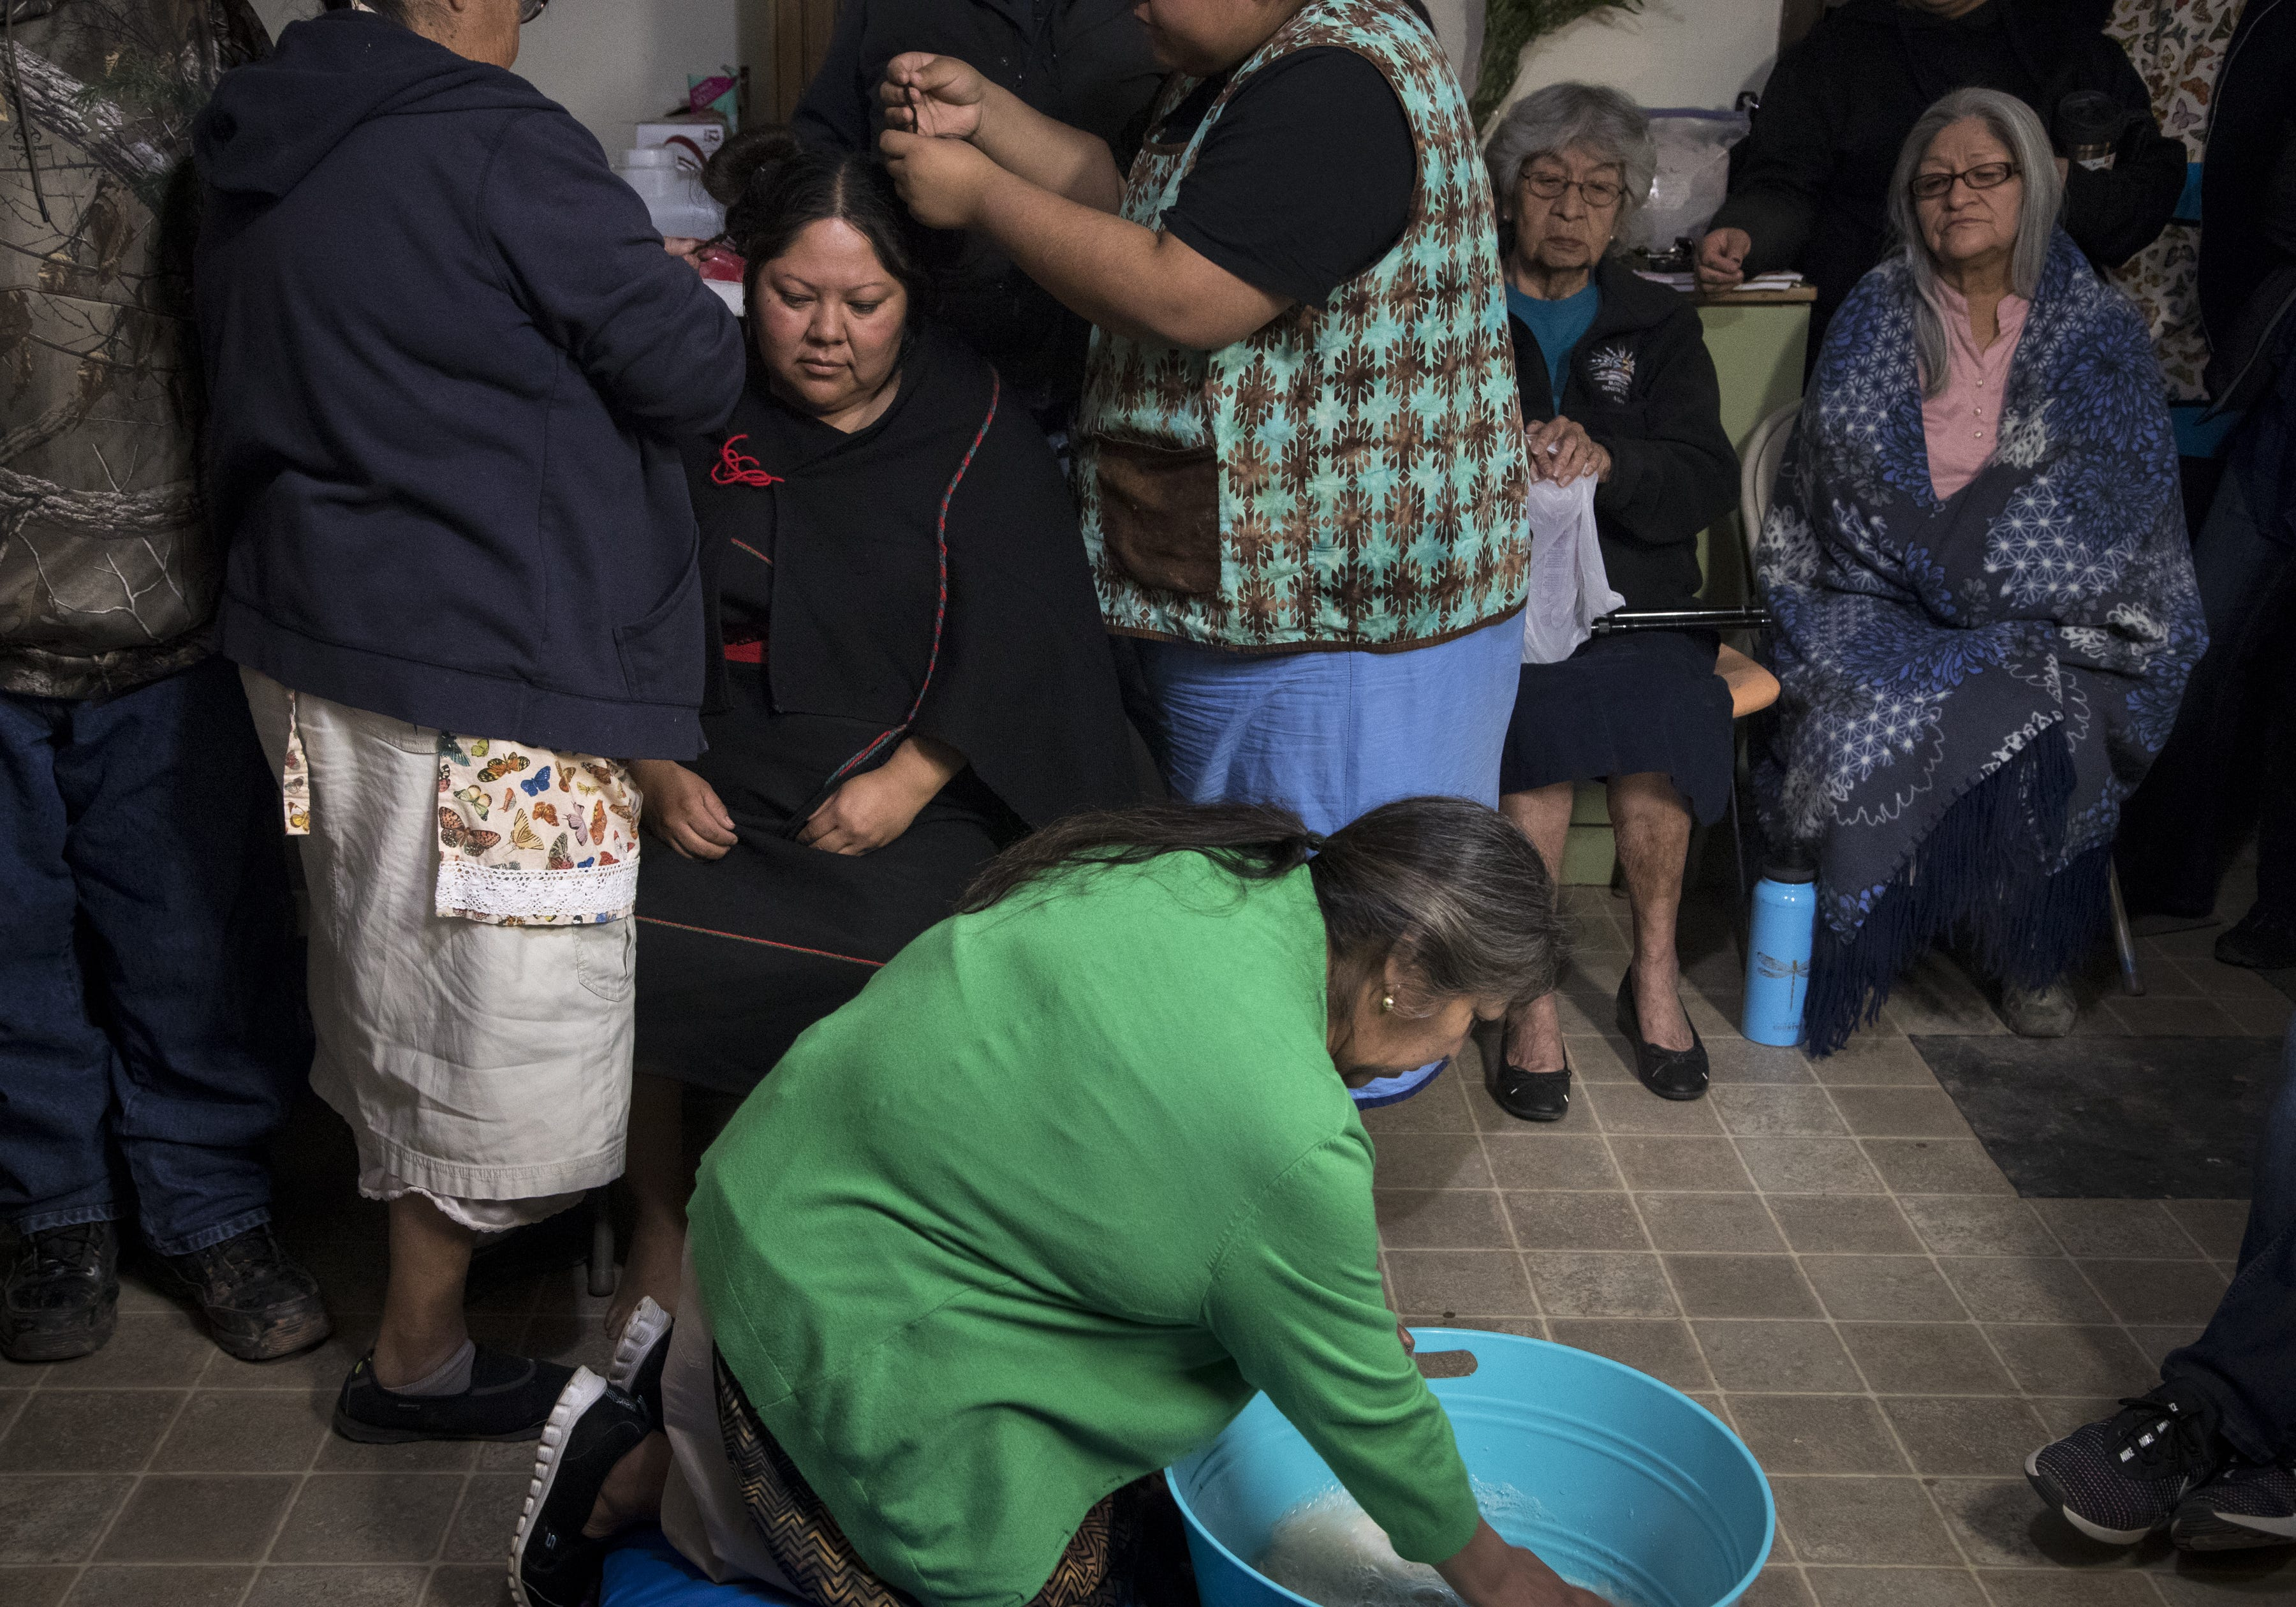 On the fifth day of the wedding, March 23, 2019, Sarah Honanie (in the green sweater) mixes yucca root with water, while Gloria Phillips (top left) takes Kara's hair down.